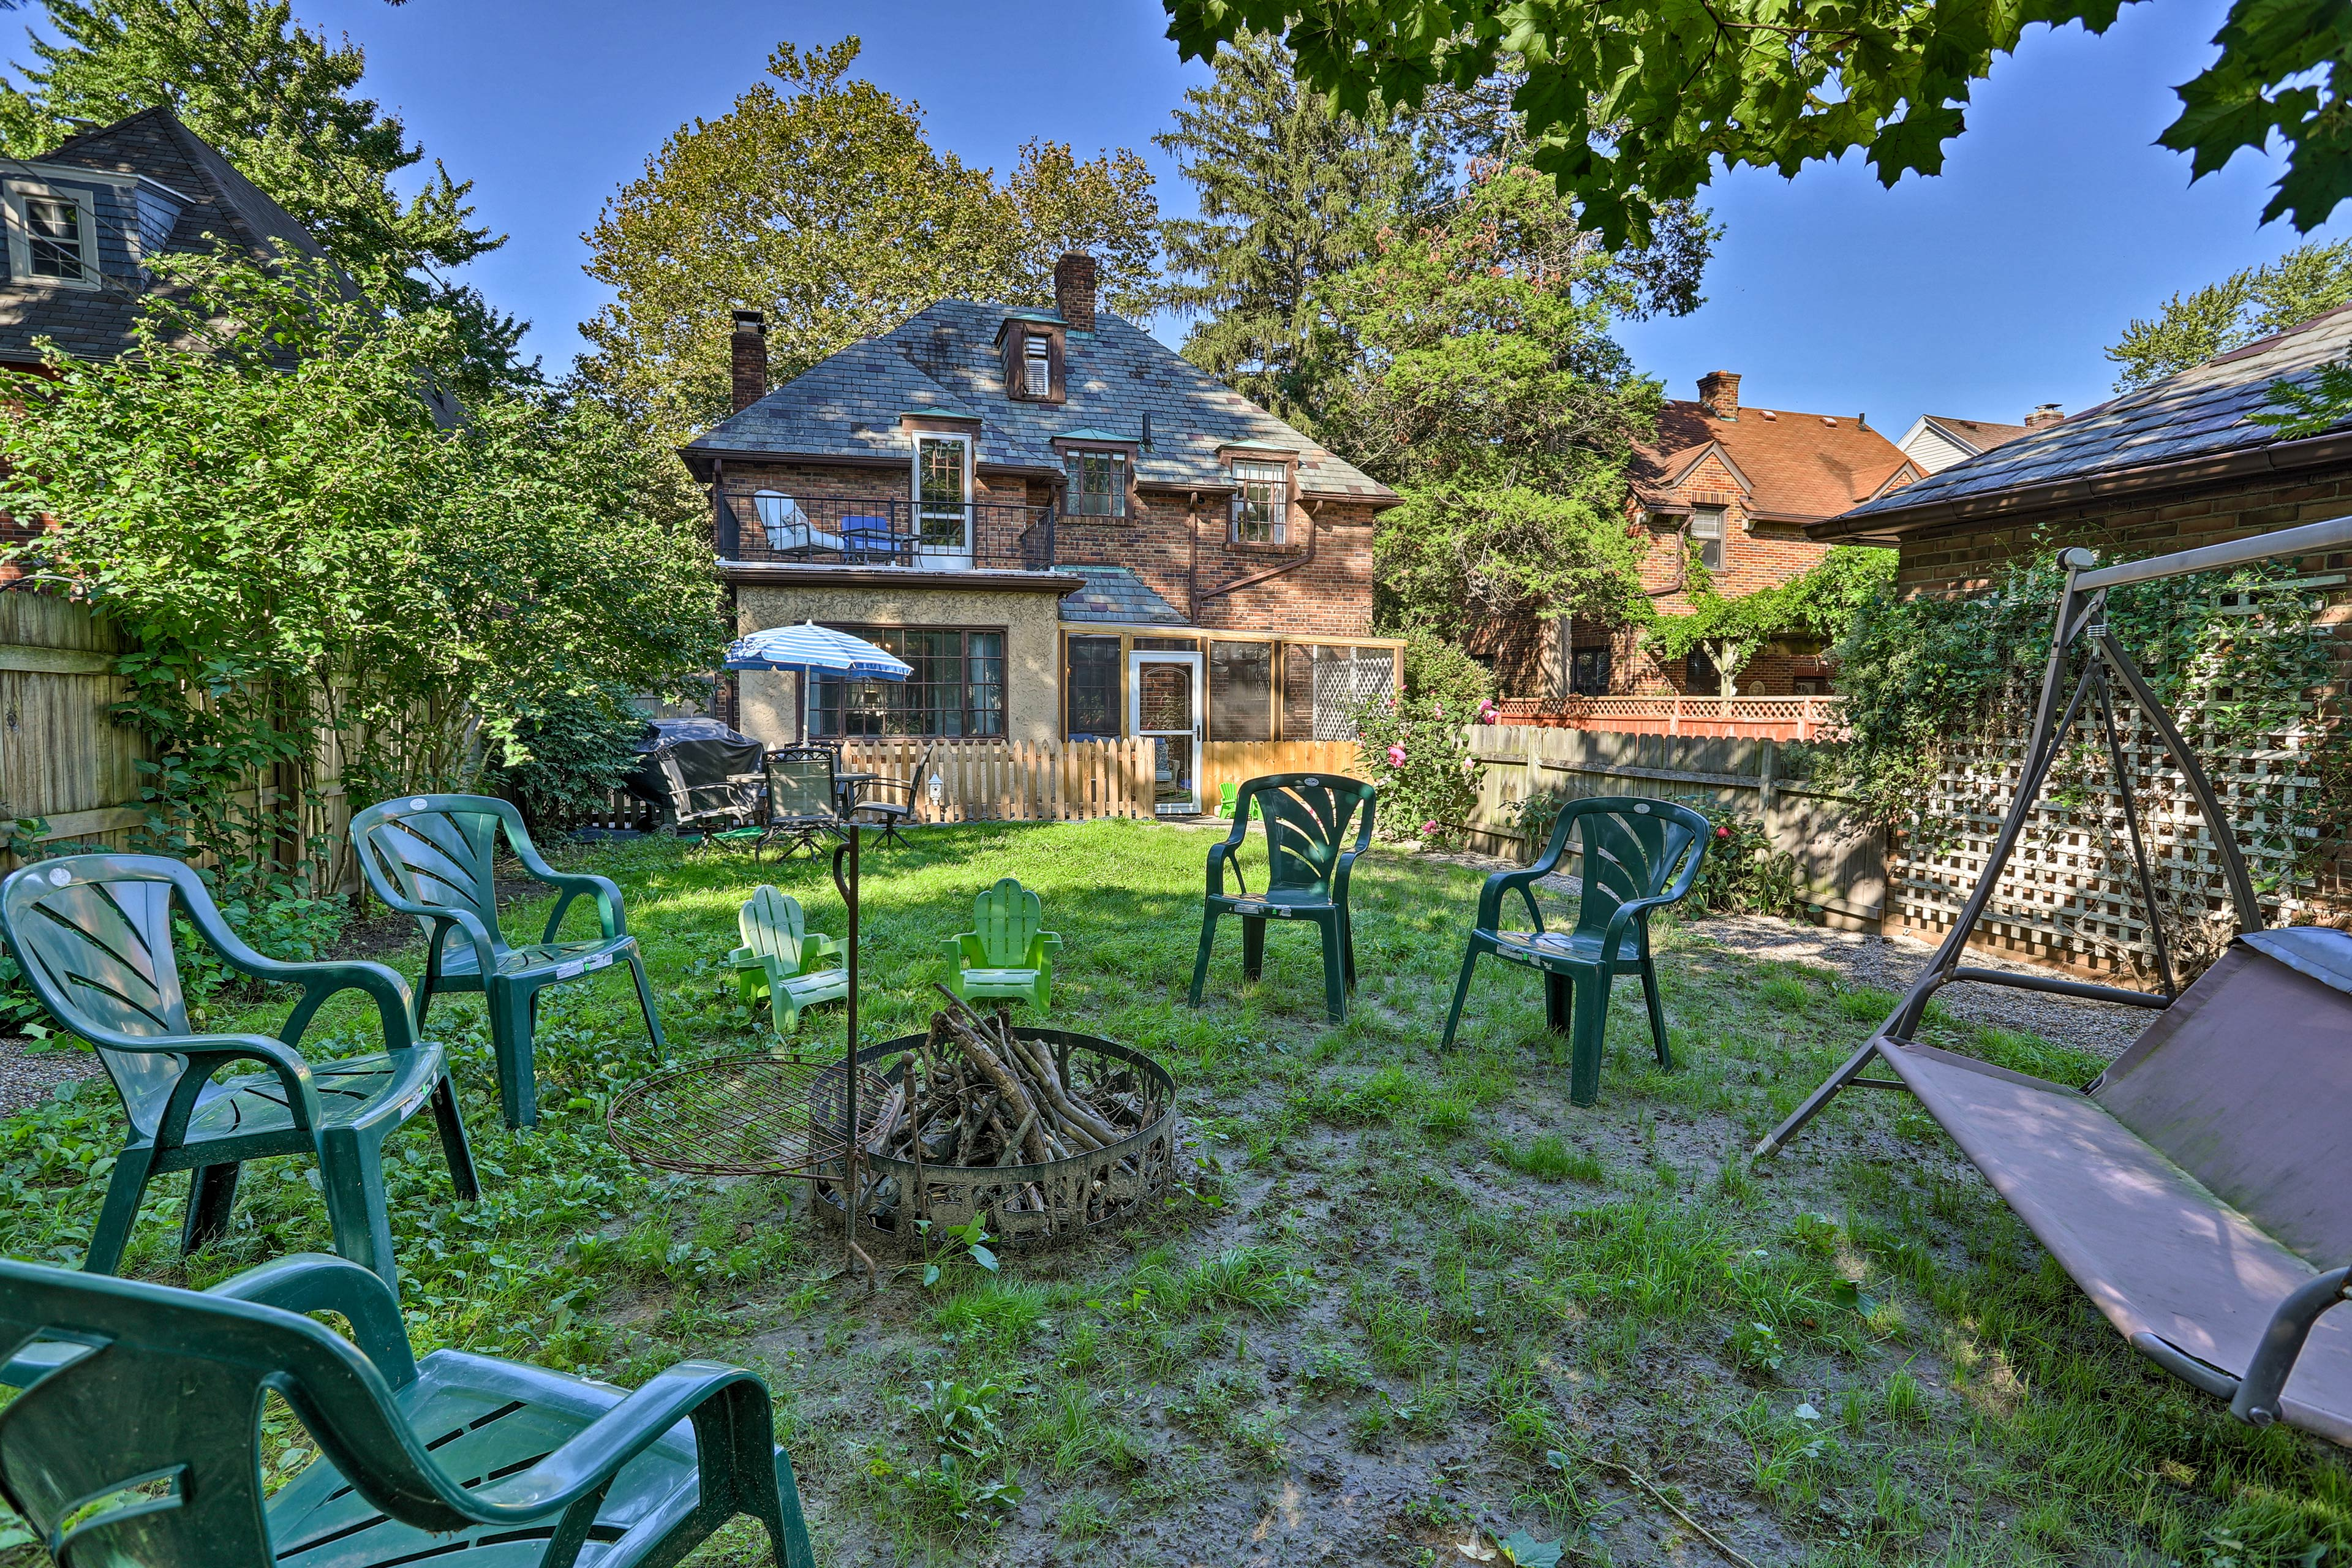 The vacation rental property includes a large yard, fire pit, & sunroom.